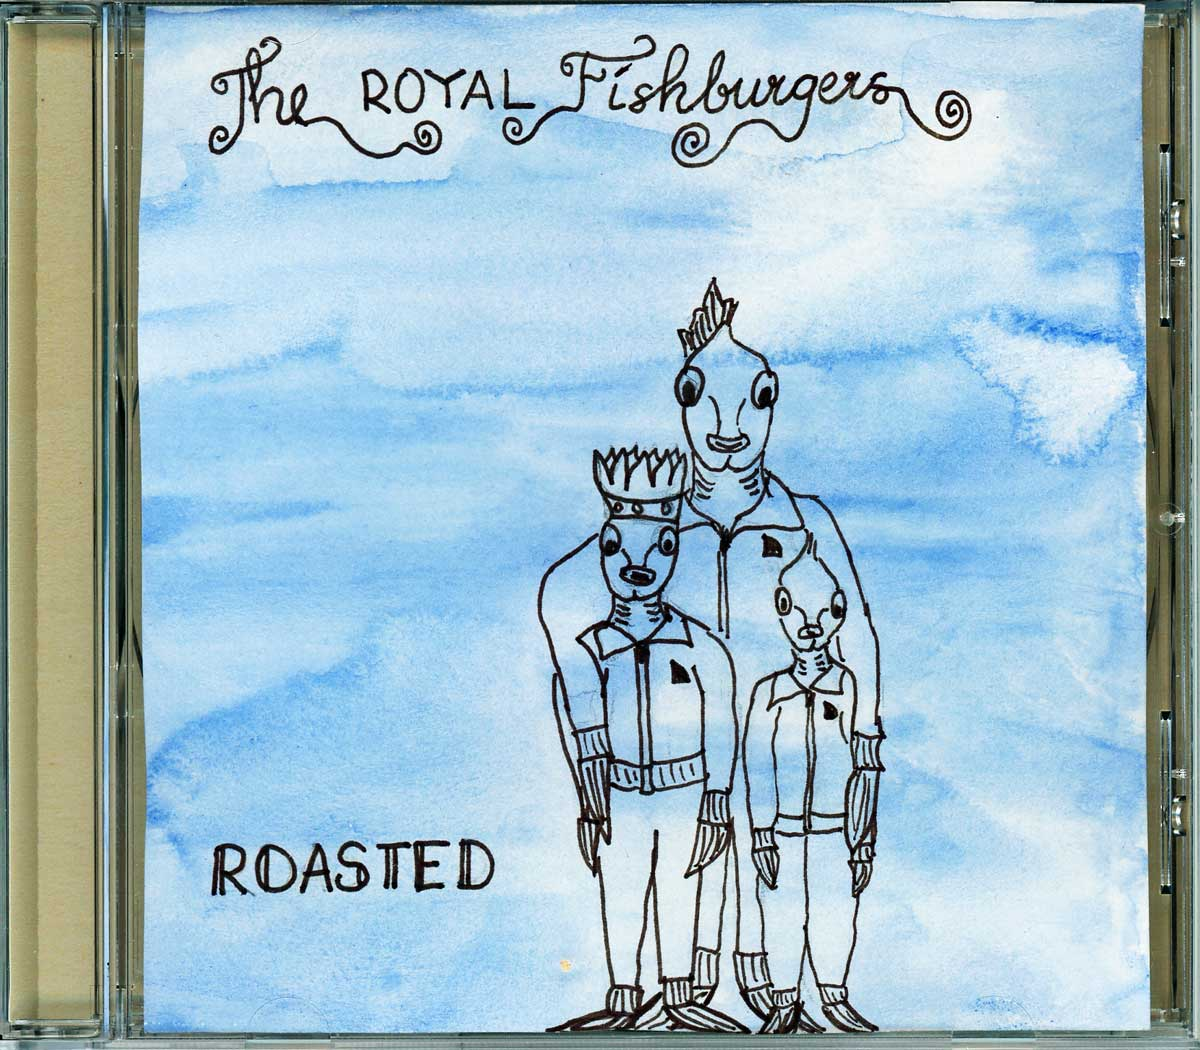 Be Creative 227 - The Royal Fishburgers, © Ines Häufler, 2011